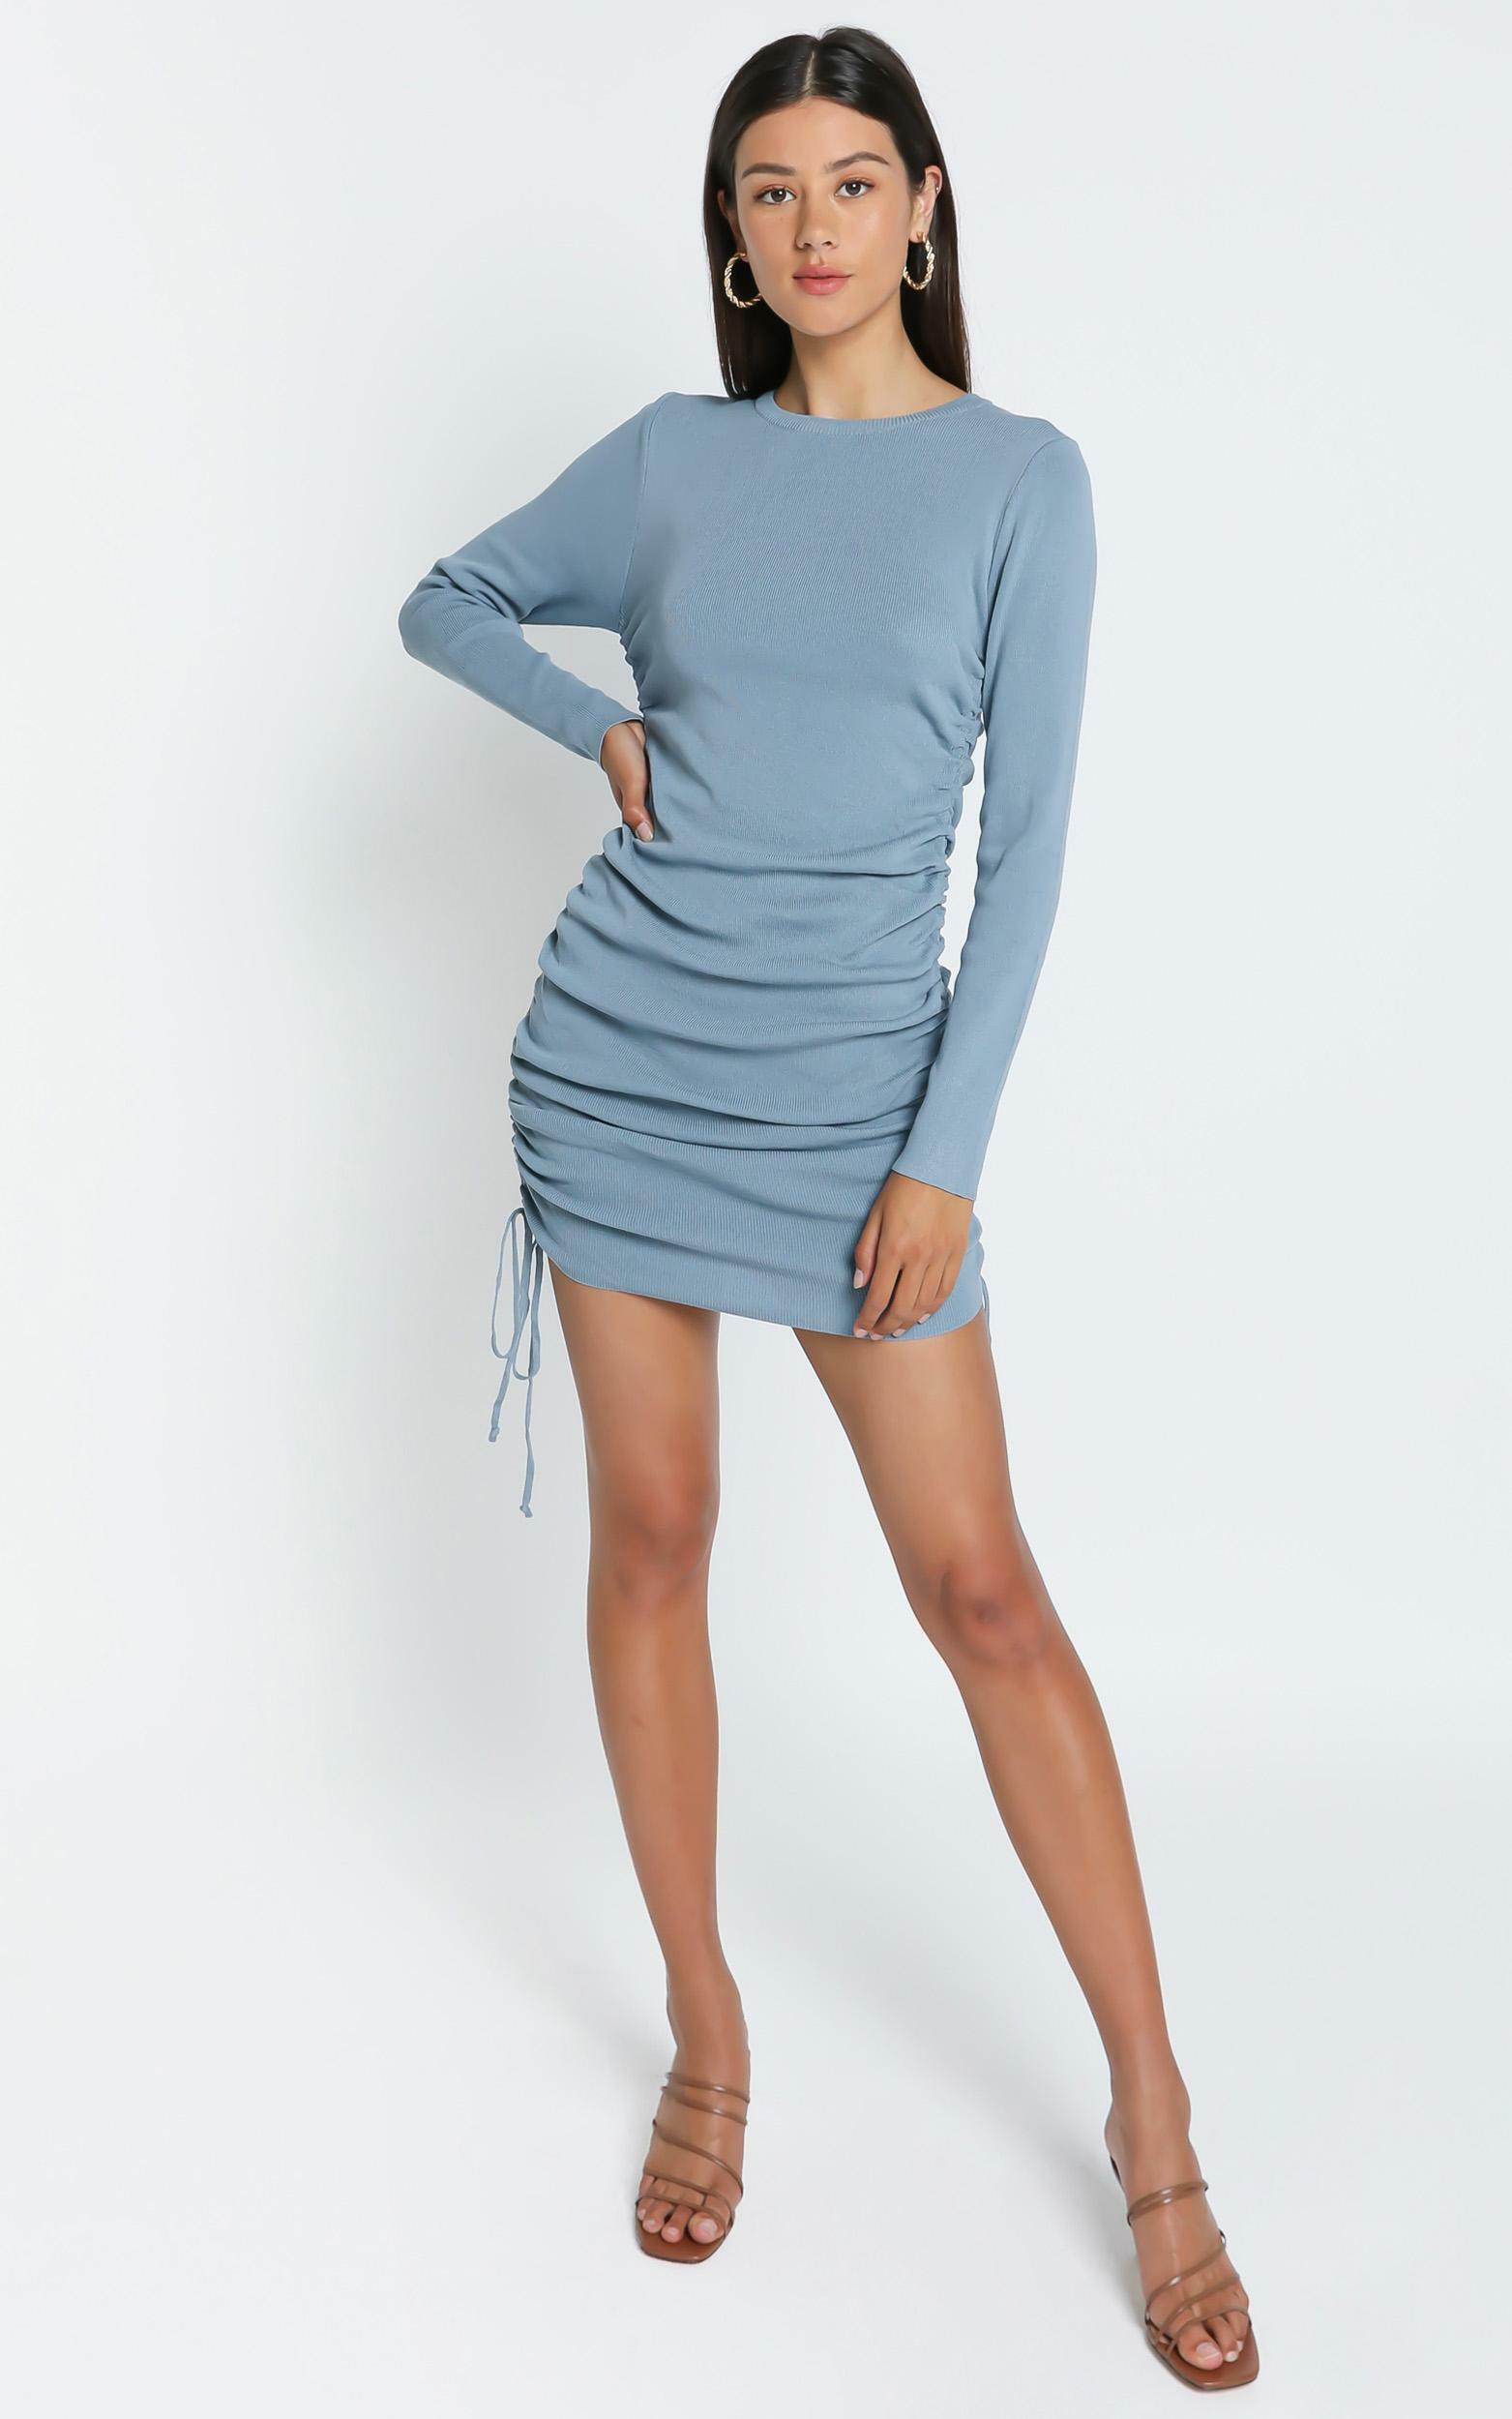 Lioness - Military Minds Long Sleeve Dress in Dusty Blue - 4 (XXS), BLU1, hi-res image number null